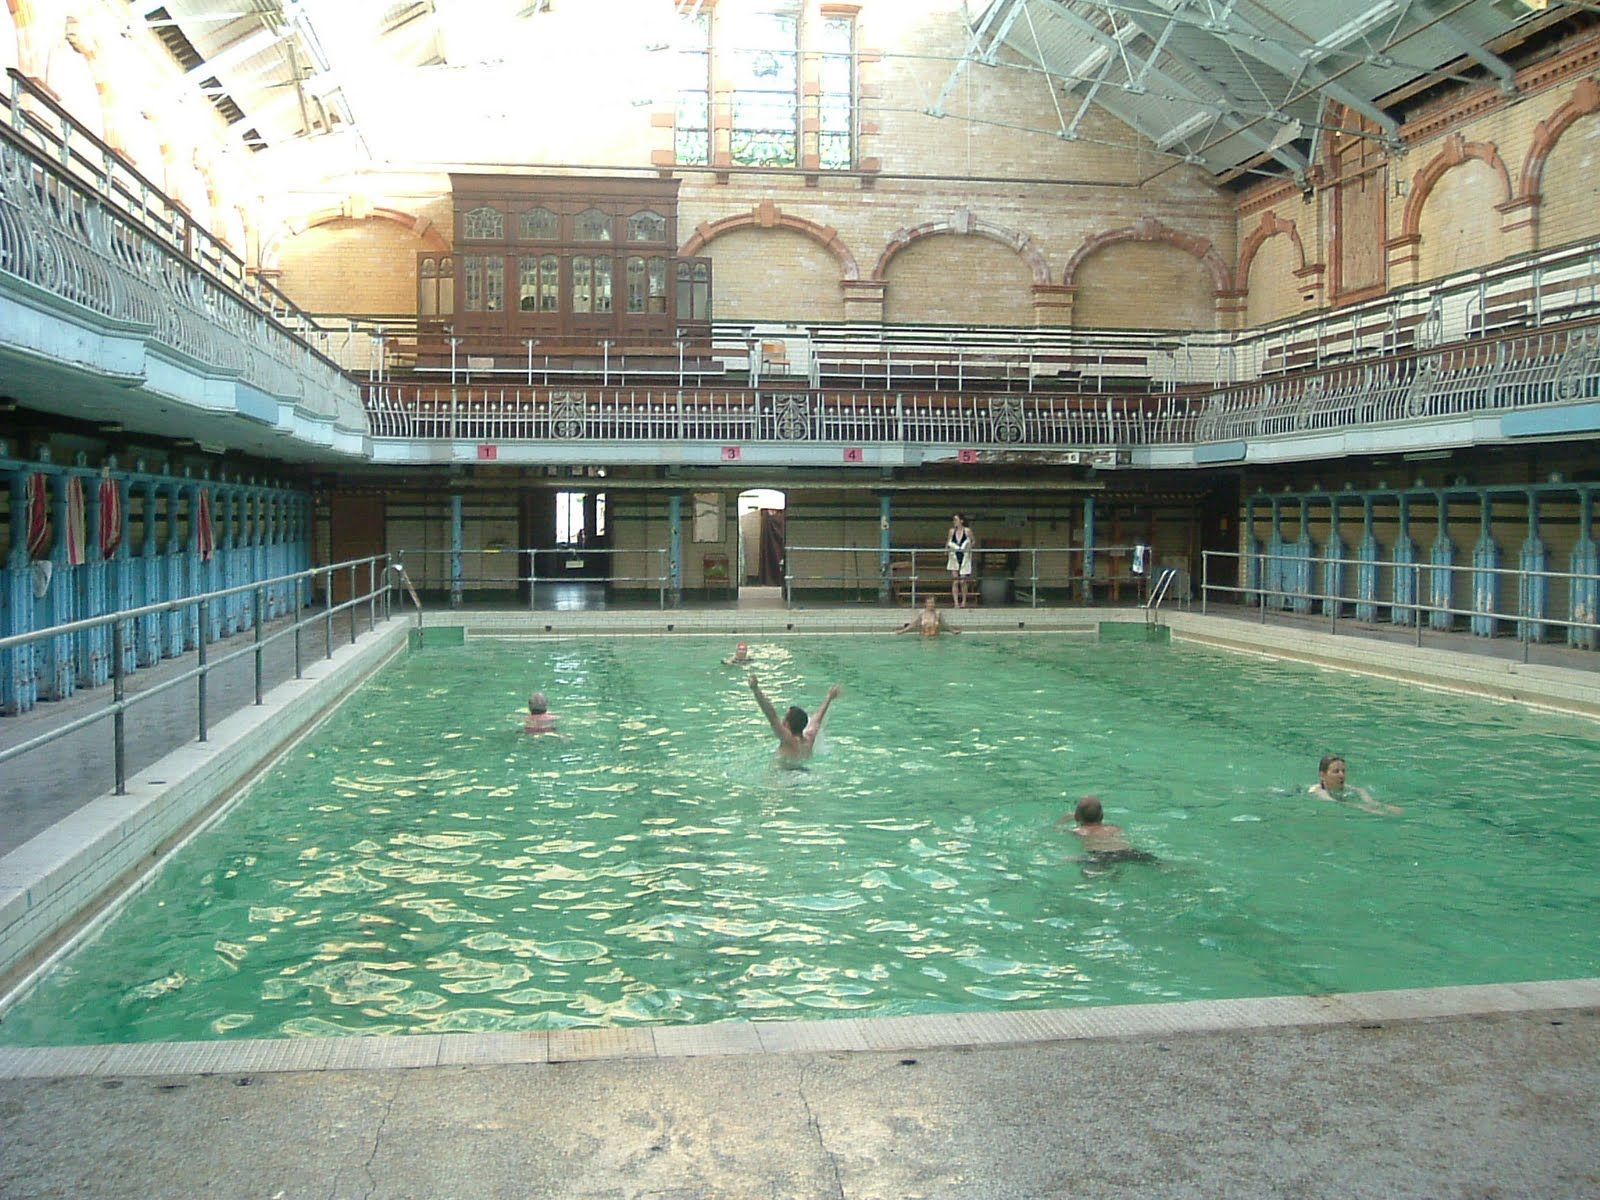 Victoria baths a part renovated edwardian leisure centre in manchester places spaces in for Gyms in manchester city centre with swimming pools